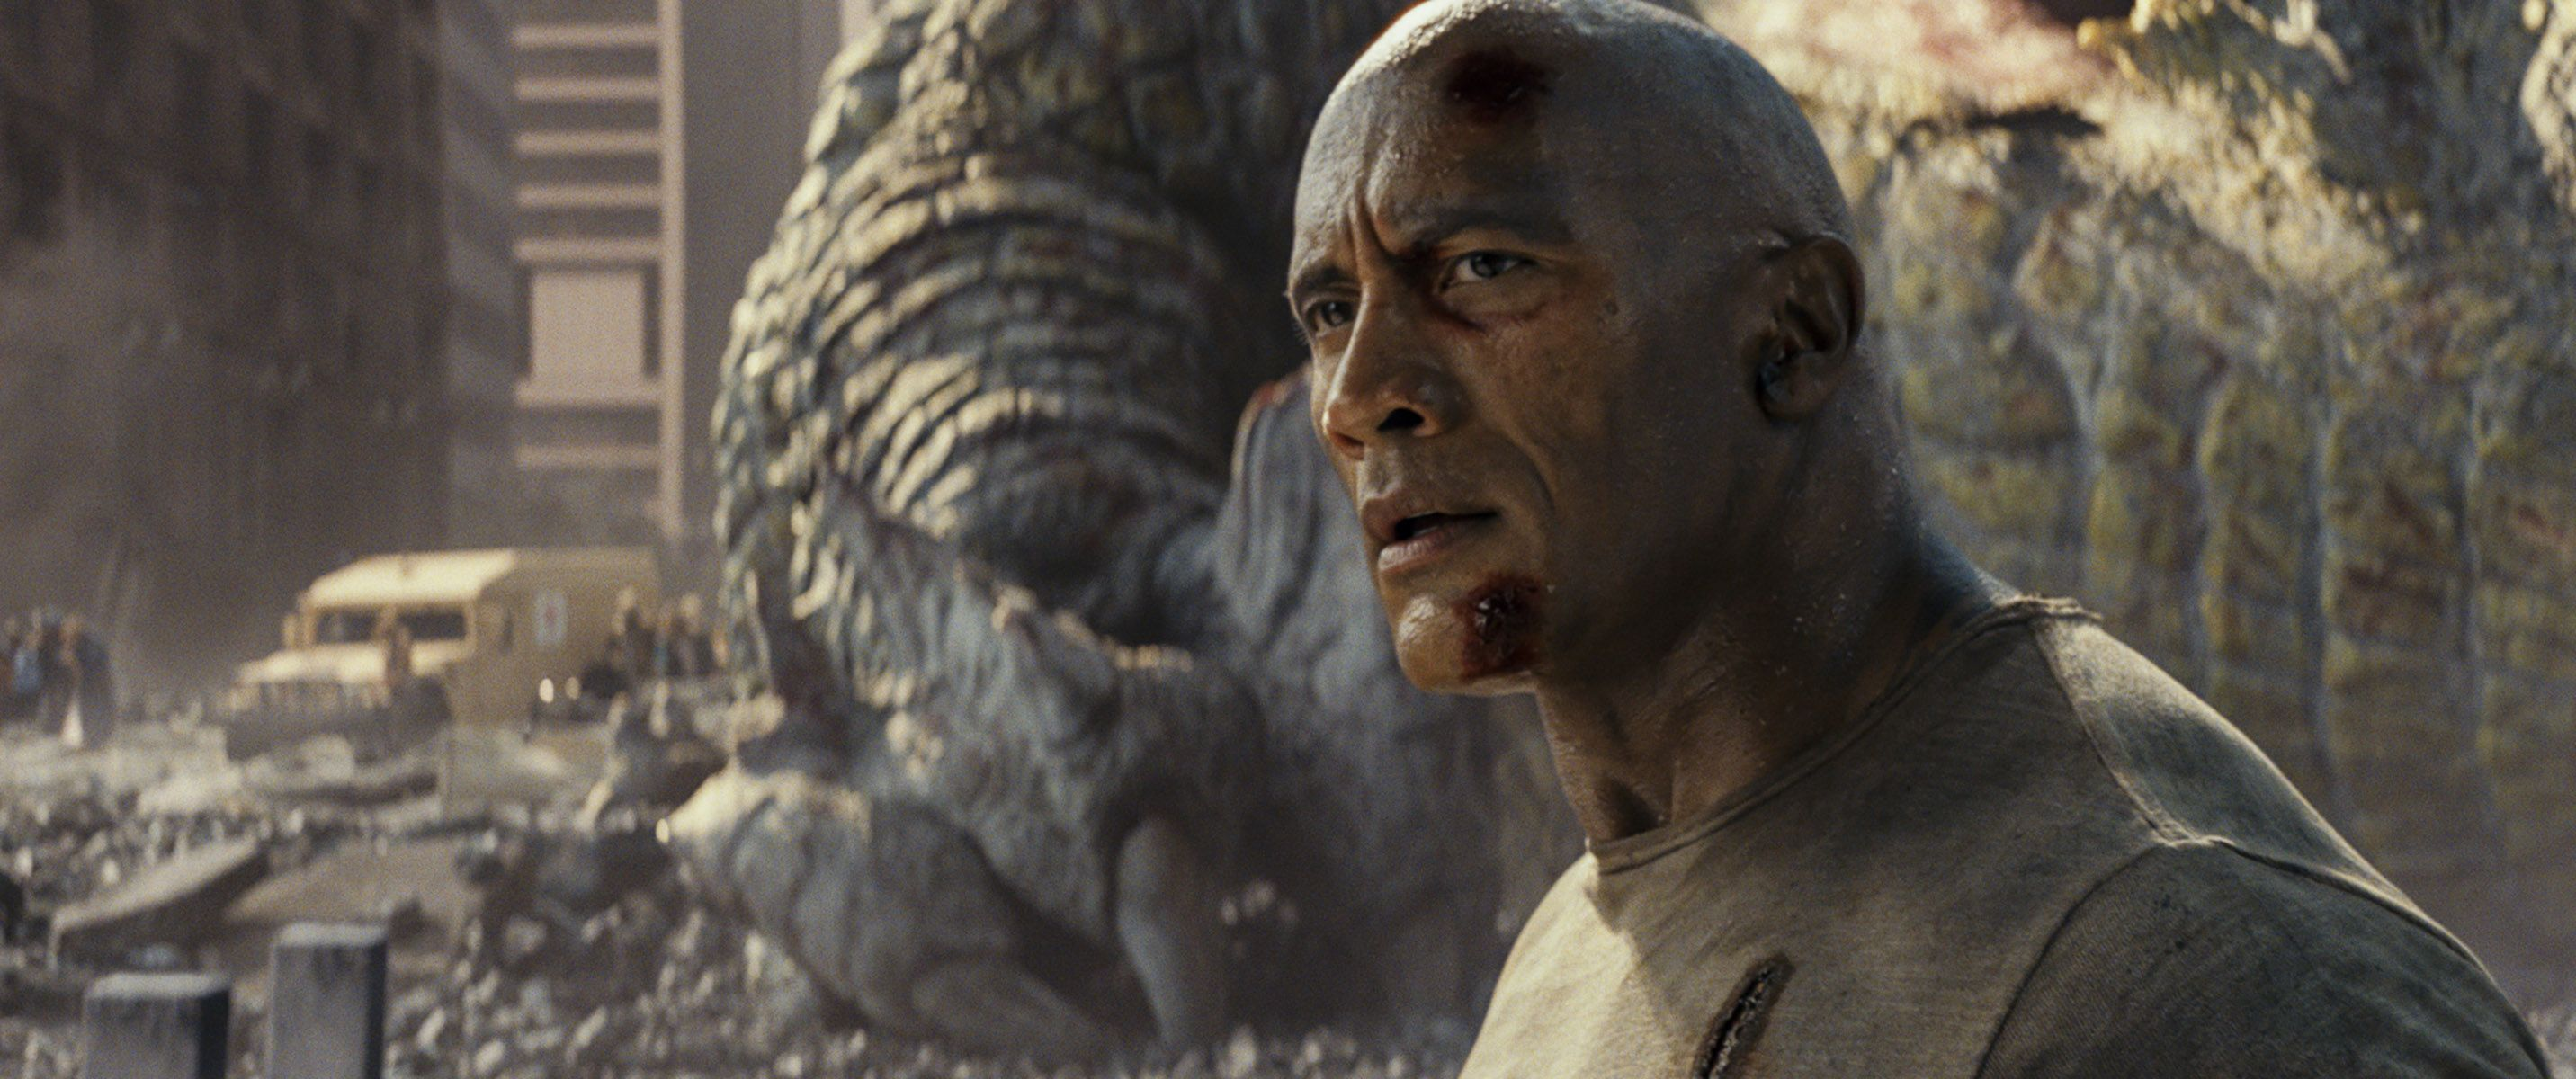 Rampage Original Ending Nearly Made Dwayne Johnson Quit Collider